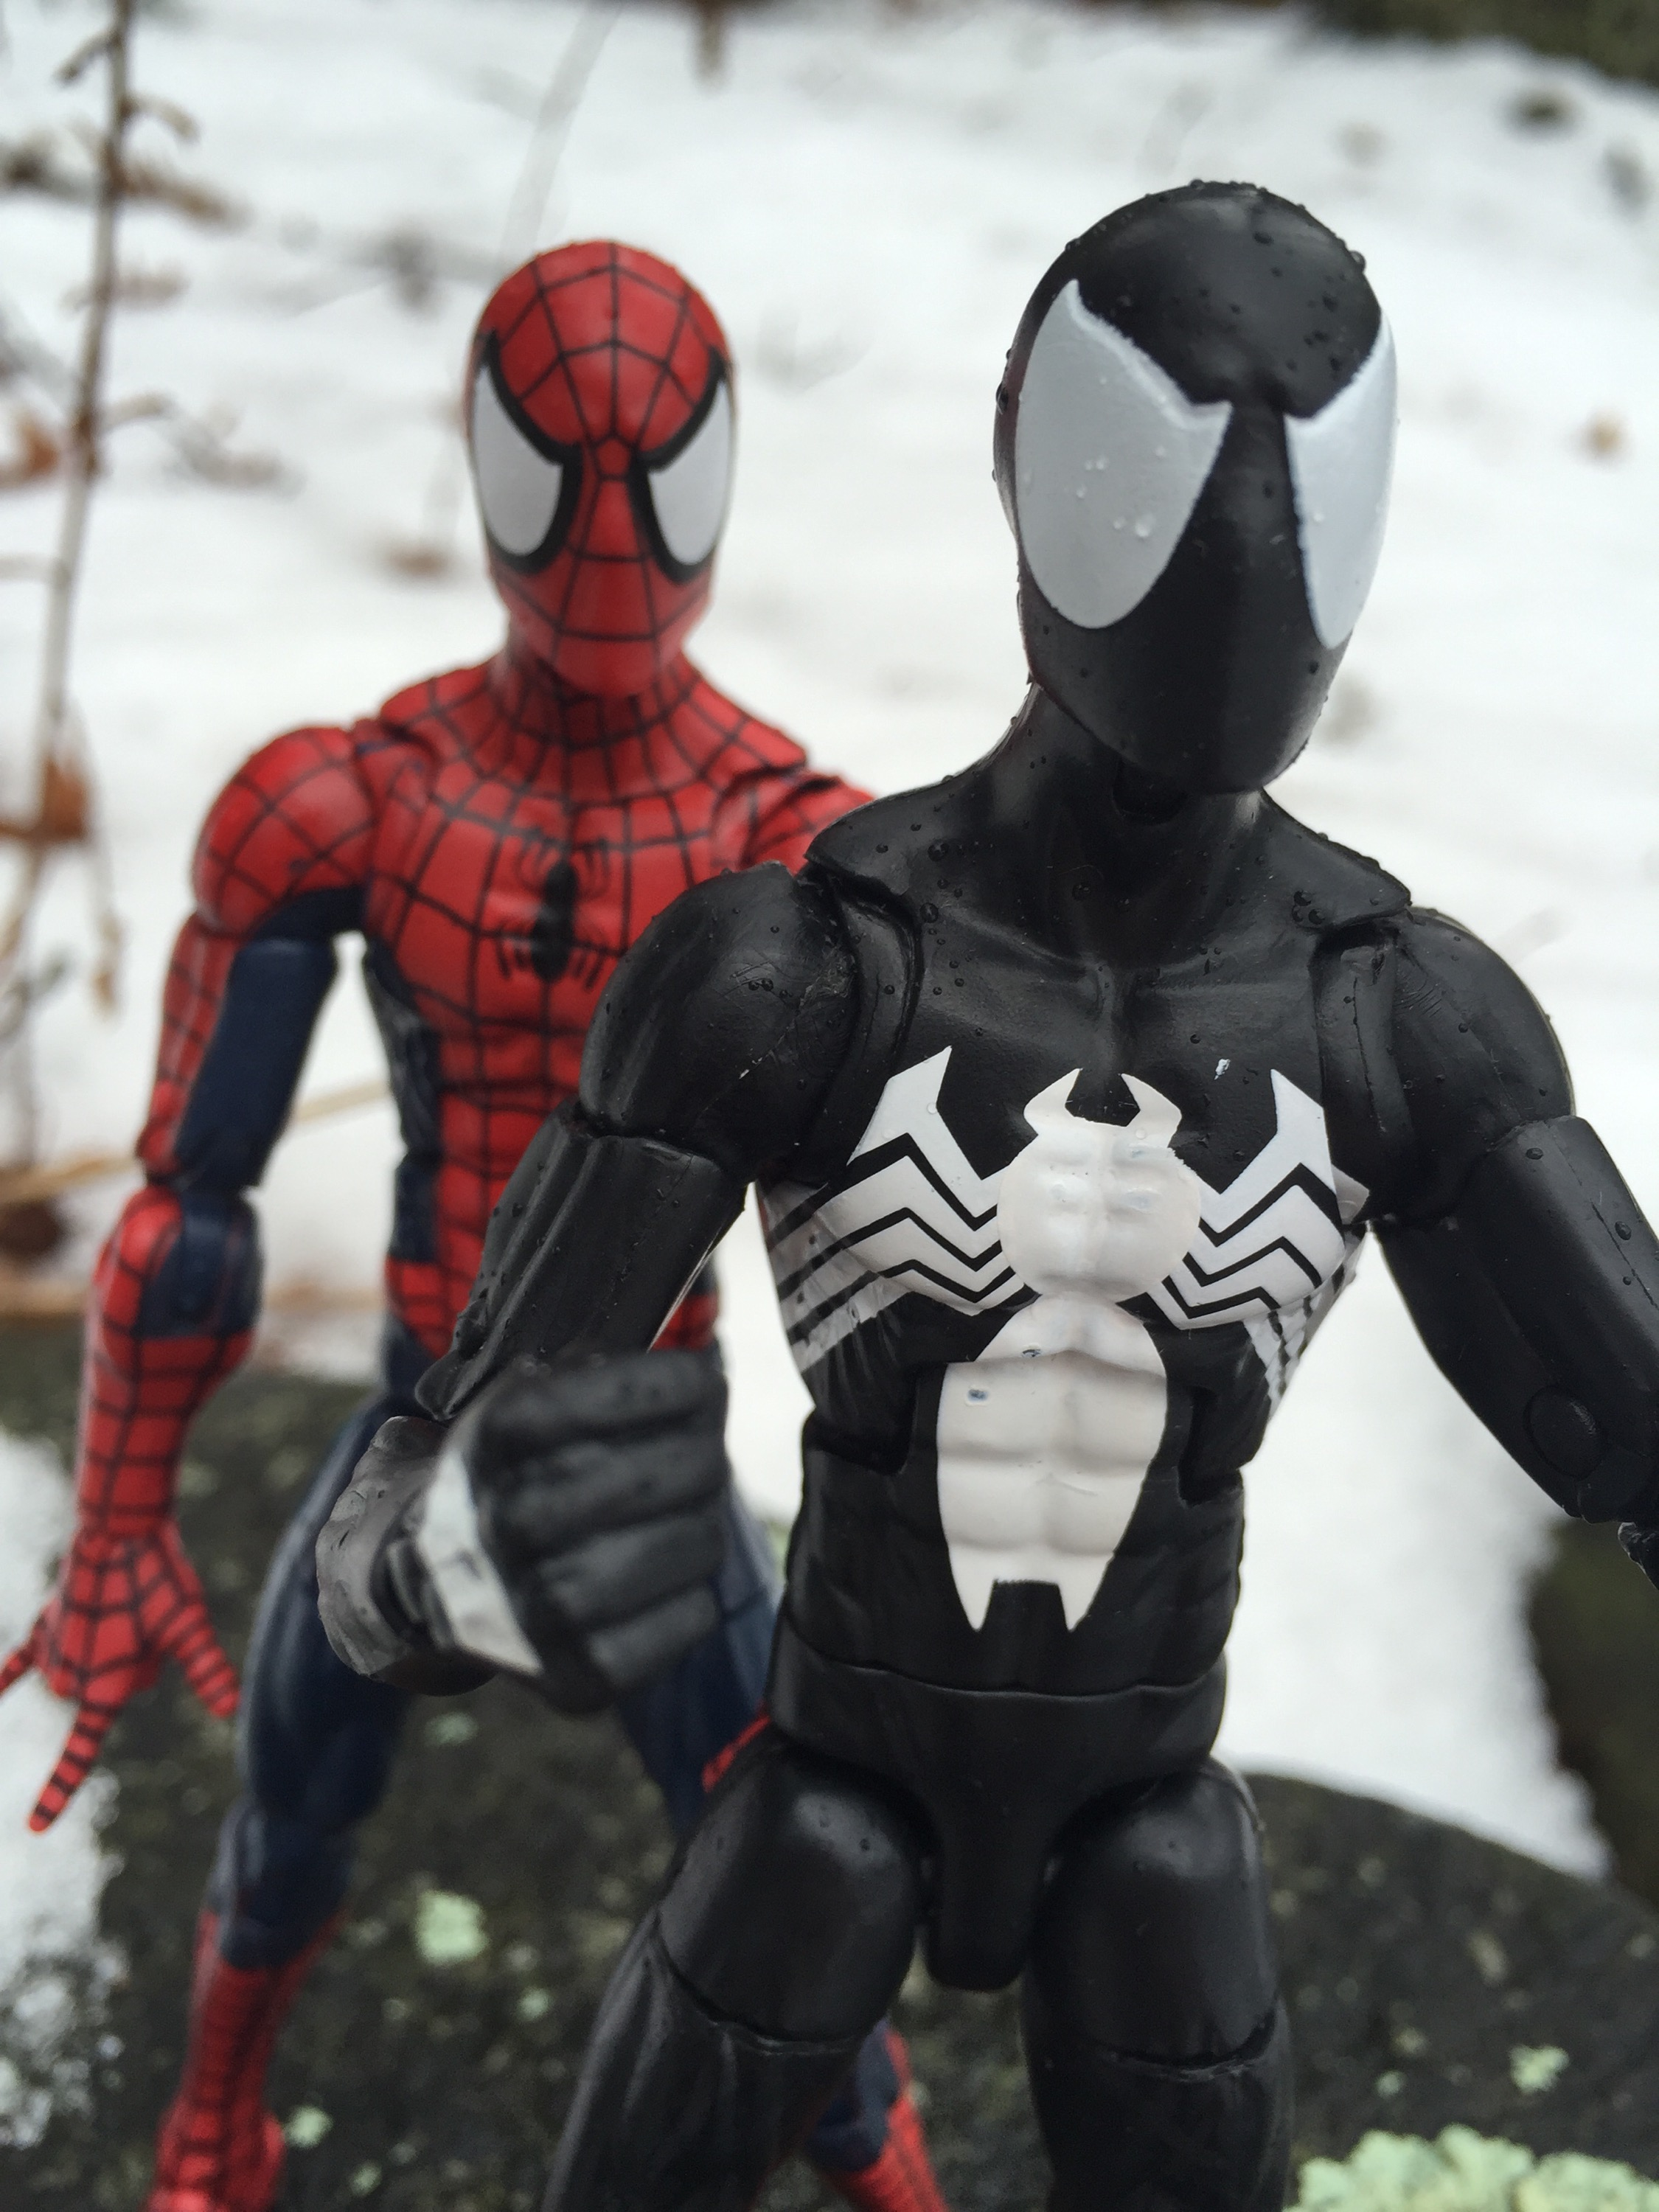 Marvel Legends The Raft Spider-Man vs. Black Costume Spider-Man Comparison & 2017 Marvel Legends Symbiote Spider-Man Figure Review u0026 Photos ...